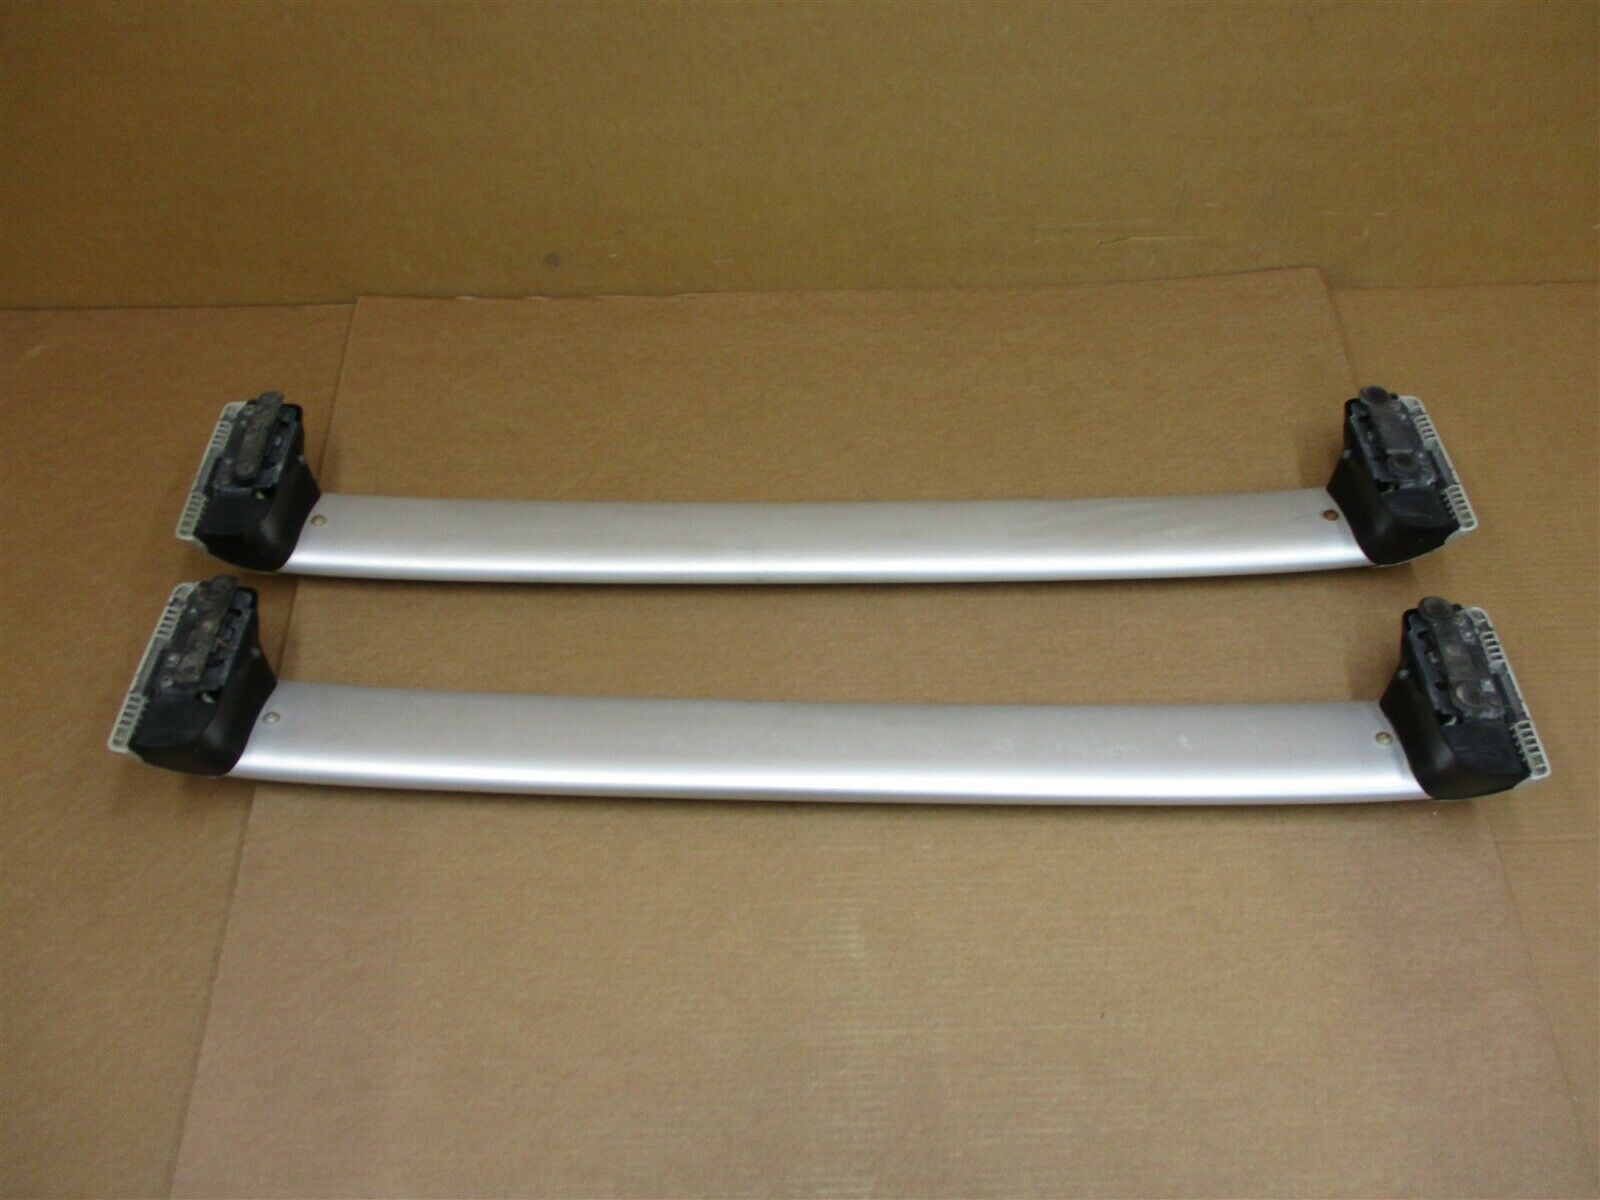 04 Cayenne Turbo AWD Porsche 955 L R EXTERIOR ROOF RAIL GUIDE TRIMS 89,934